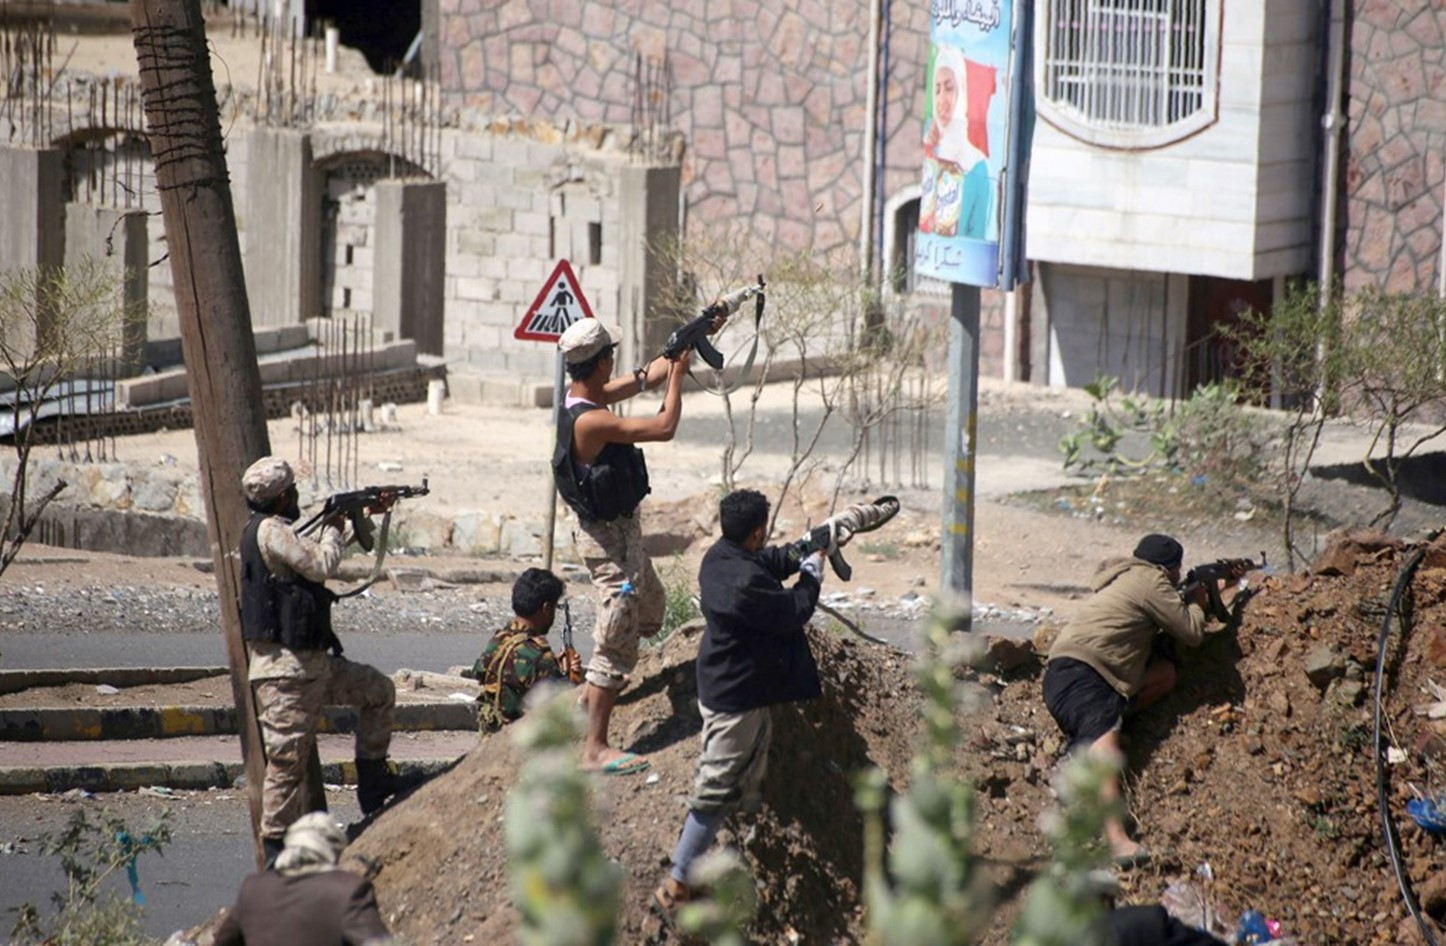 Yemenis demand end to Houthi siege of Taiz as part of peace plans